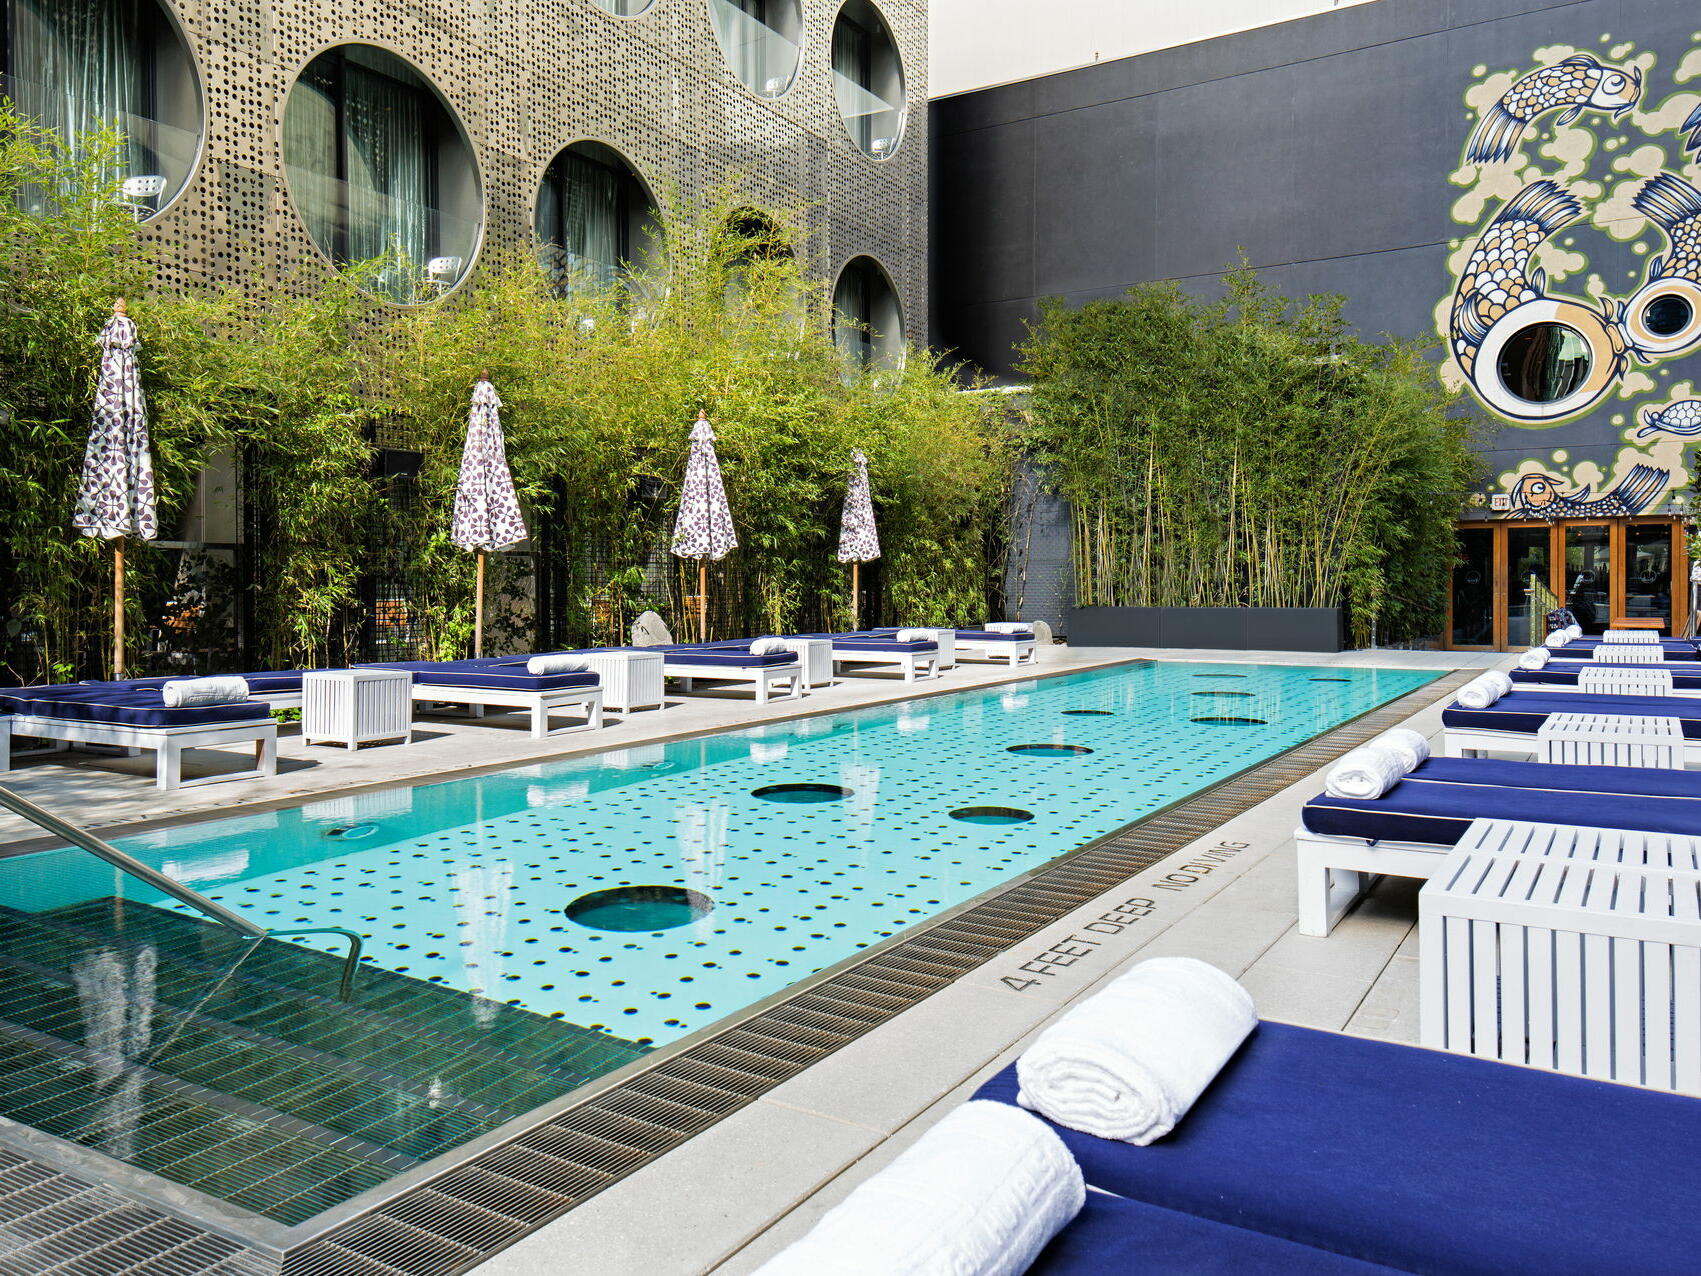 Dream Beach pool with sunbeds & cabanas at Dream Downtown NYC